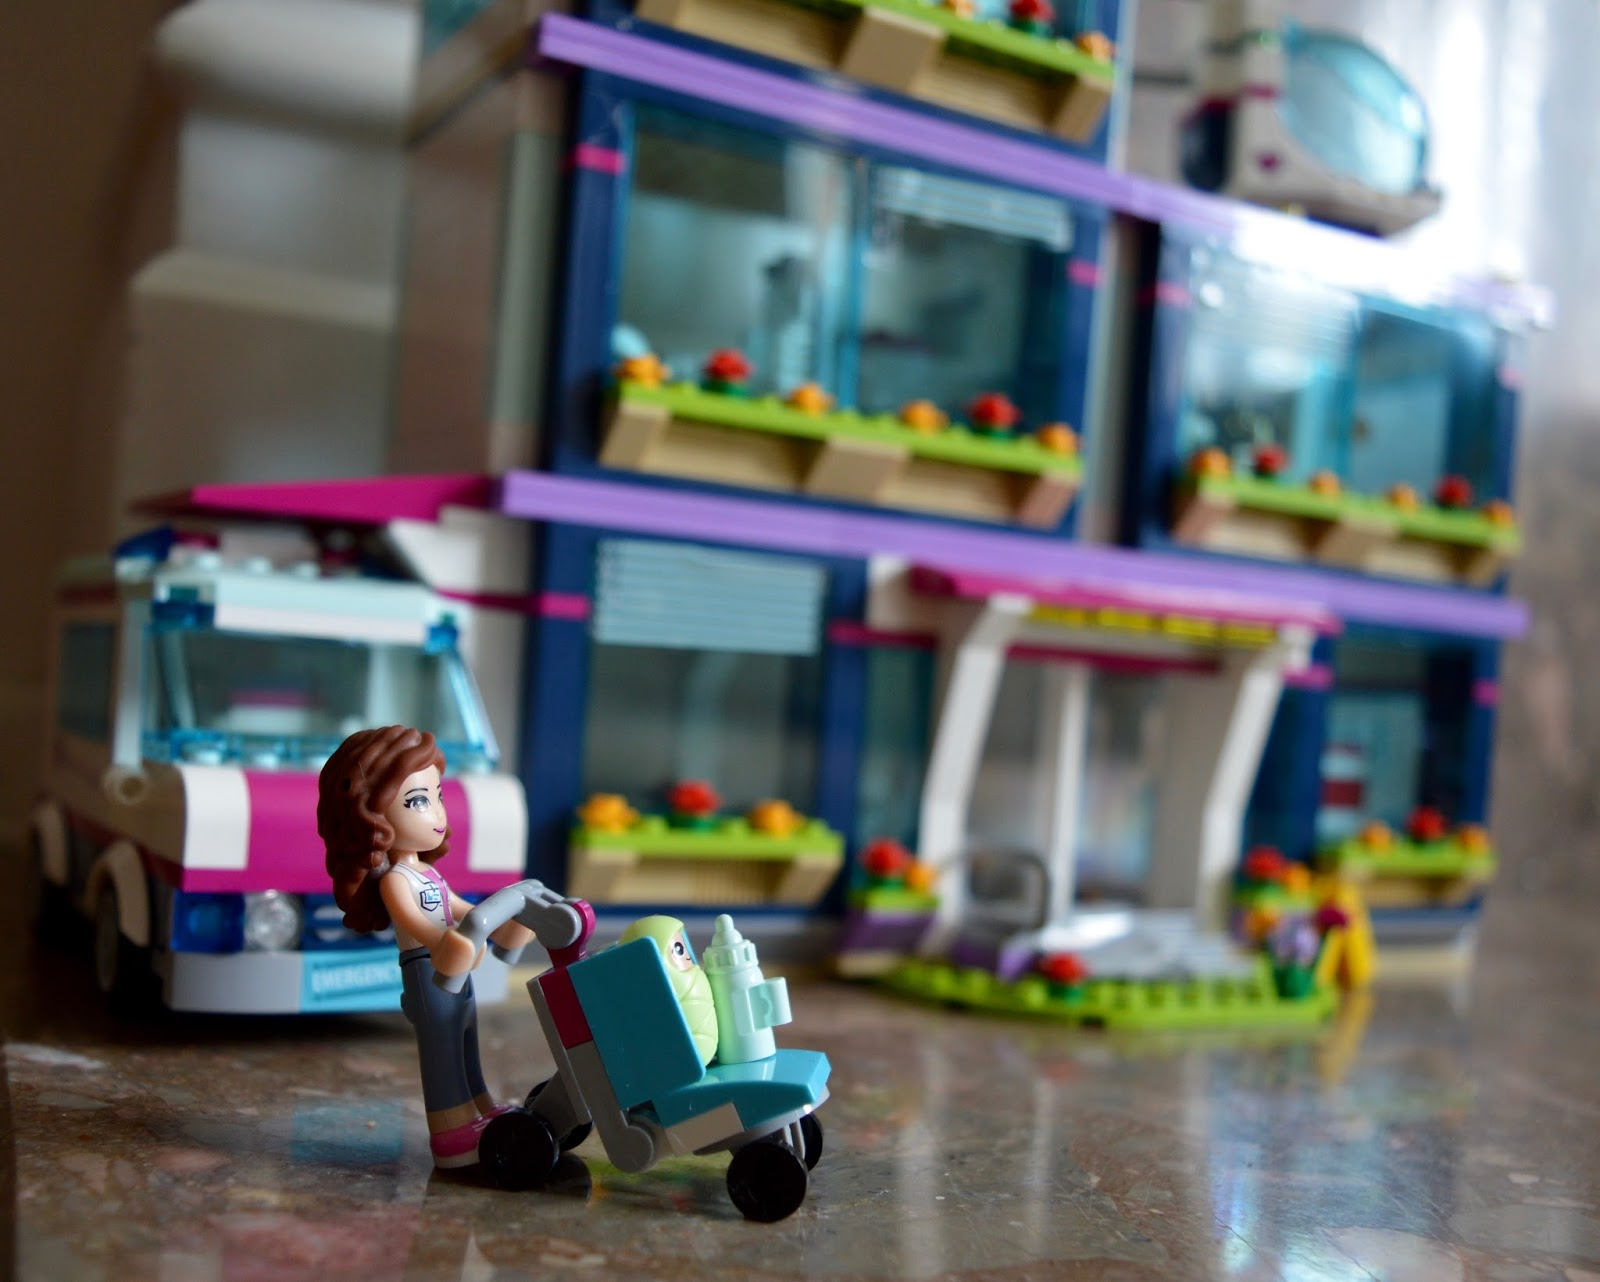 Real Life Lego House When Are Children Ready For Their First Lego Set North East